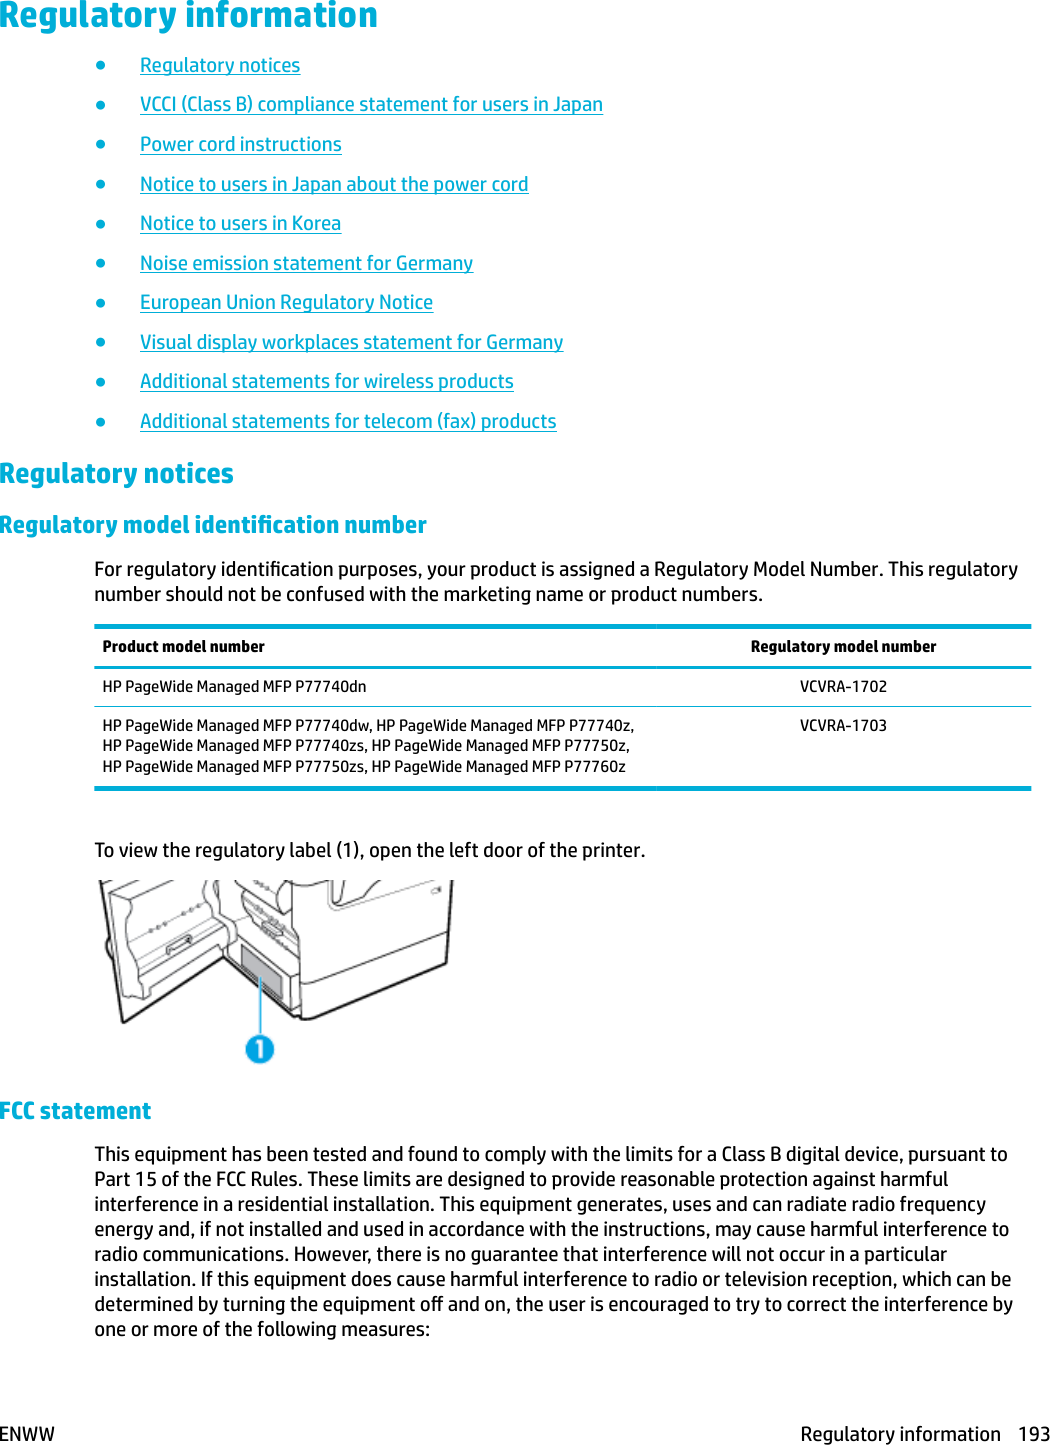 HP PageWide MFP P77740 60 Series – ENWW Page Wide User Guide C05466591